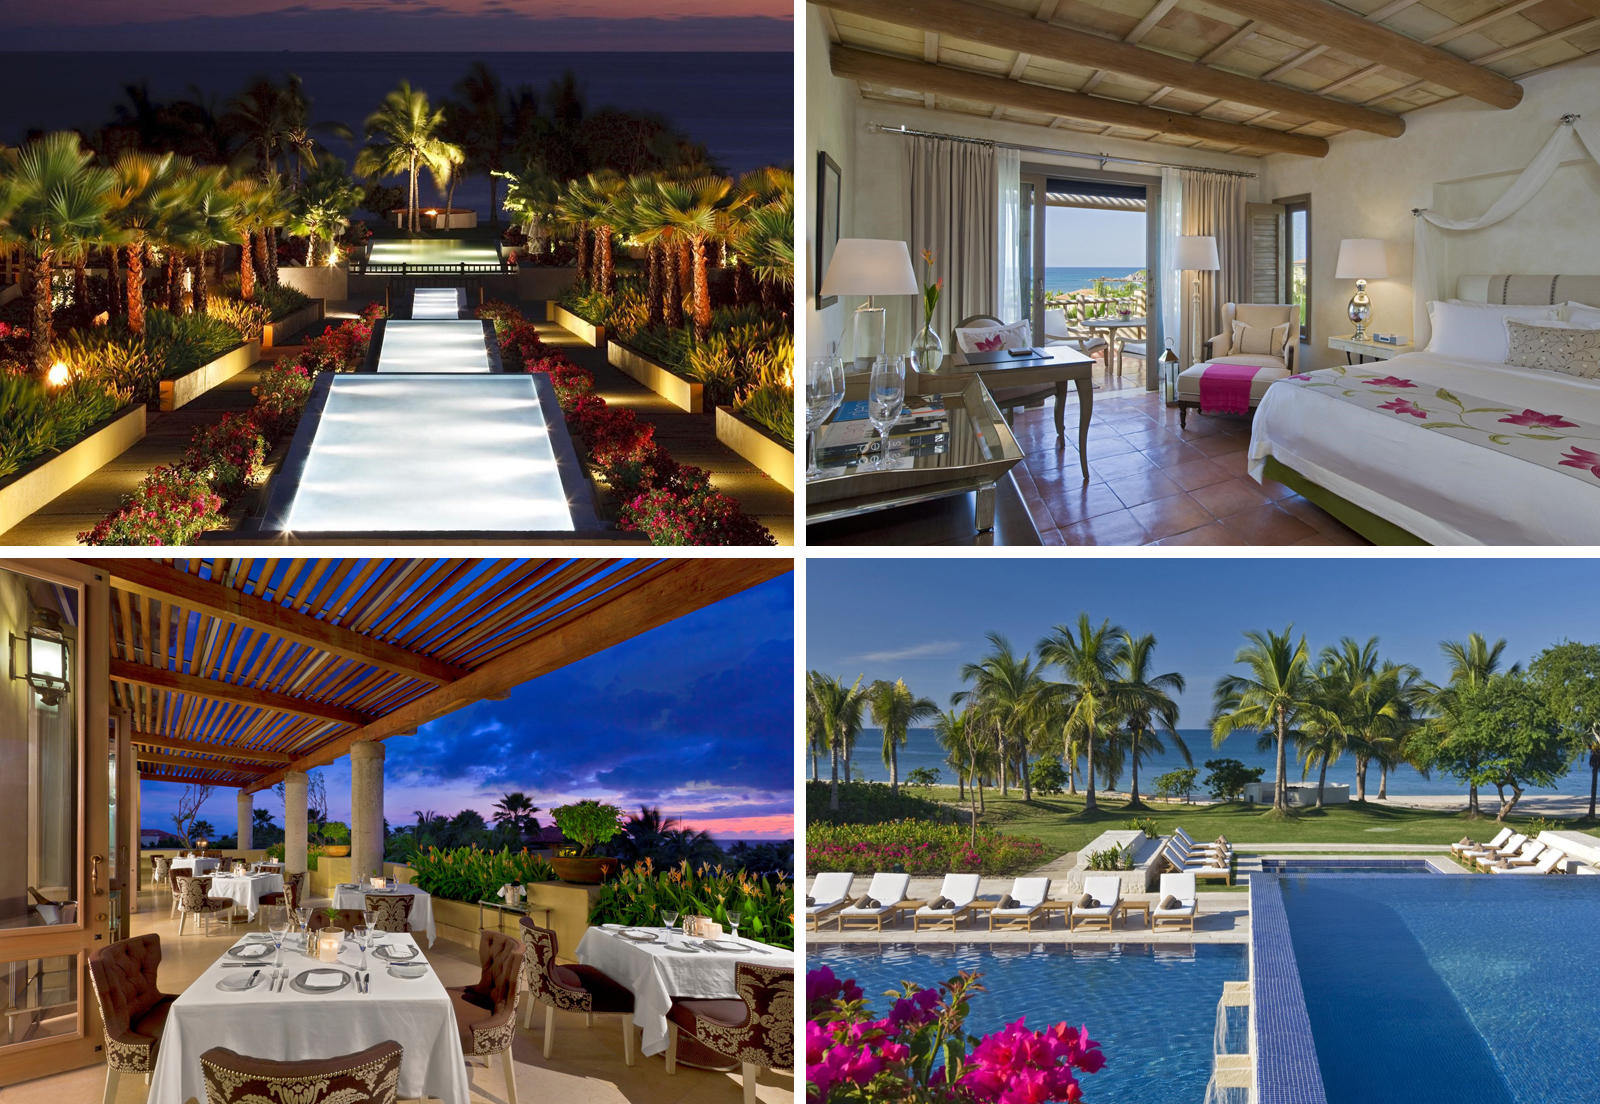 The St. Regis Punta Mita Luxury Resort